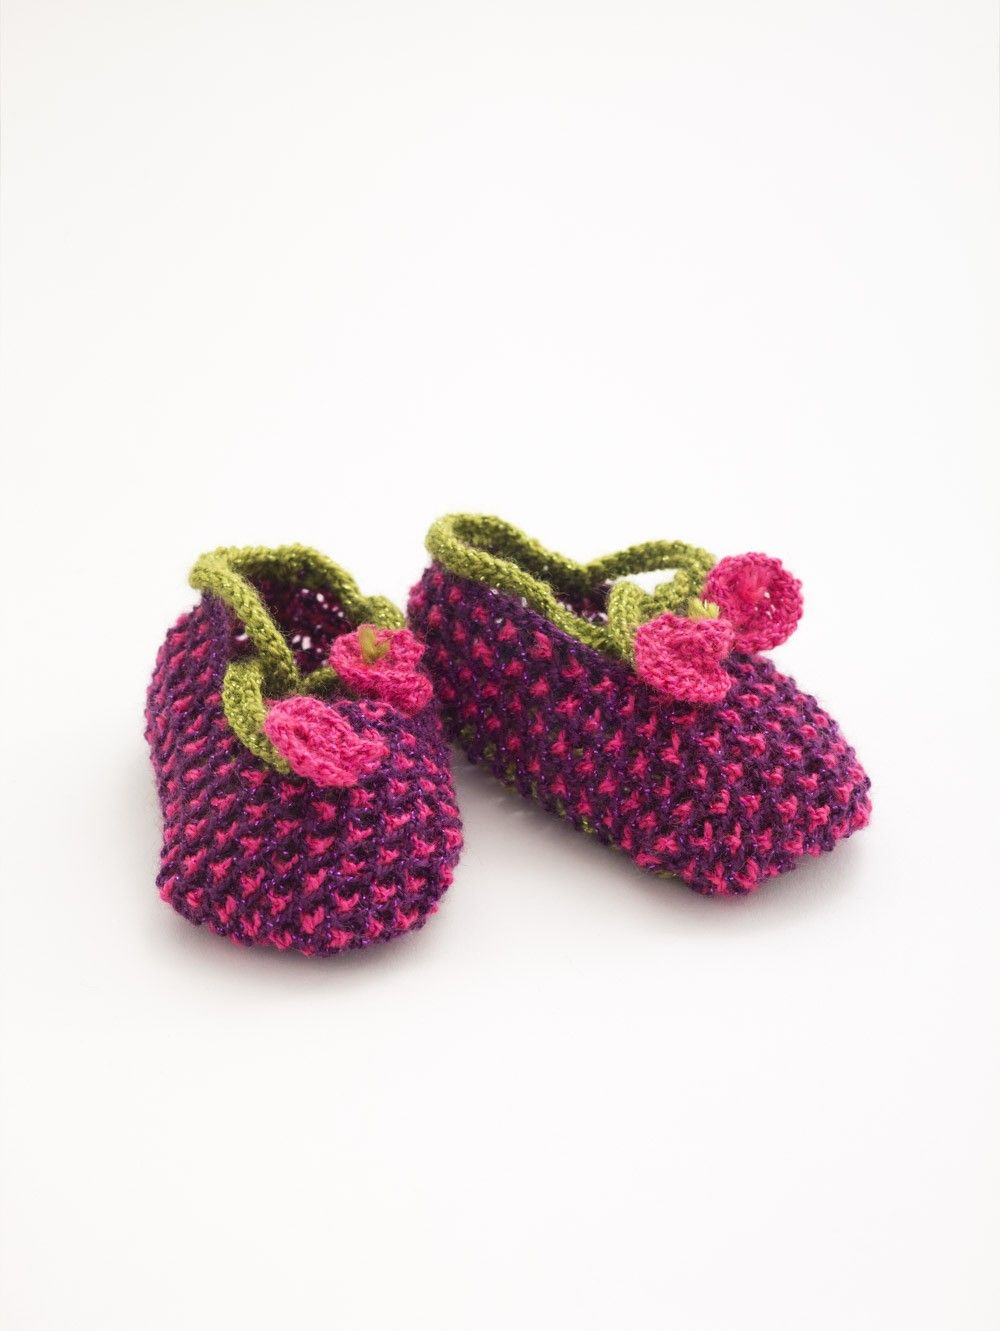 Blossom Booties (Knit) | Craft Ideas | Pinterest